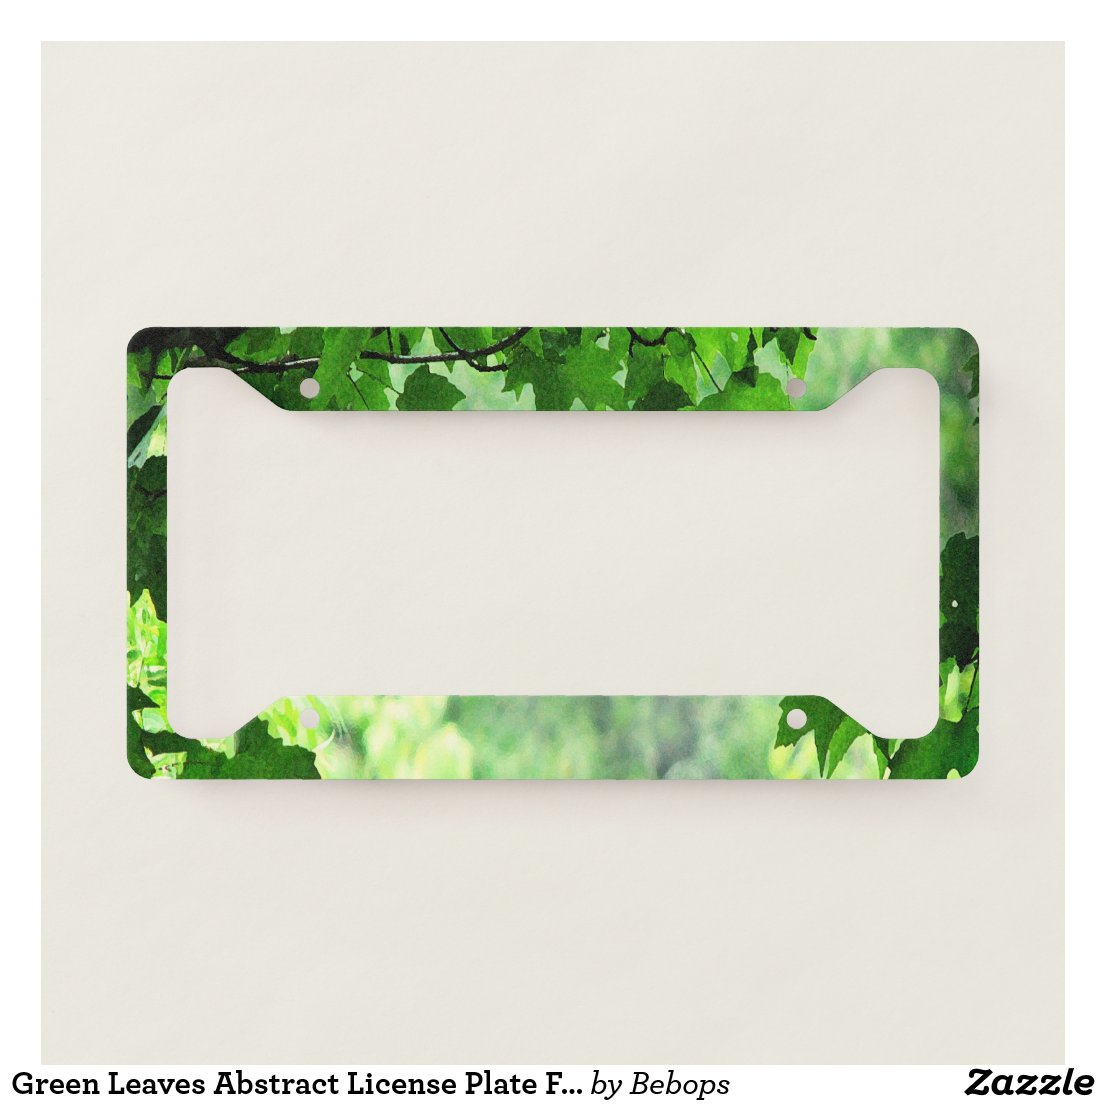 Green Leaves Abstract License Plate Frame